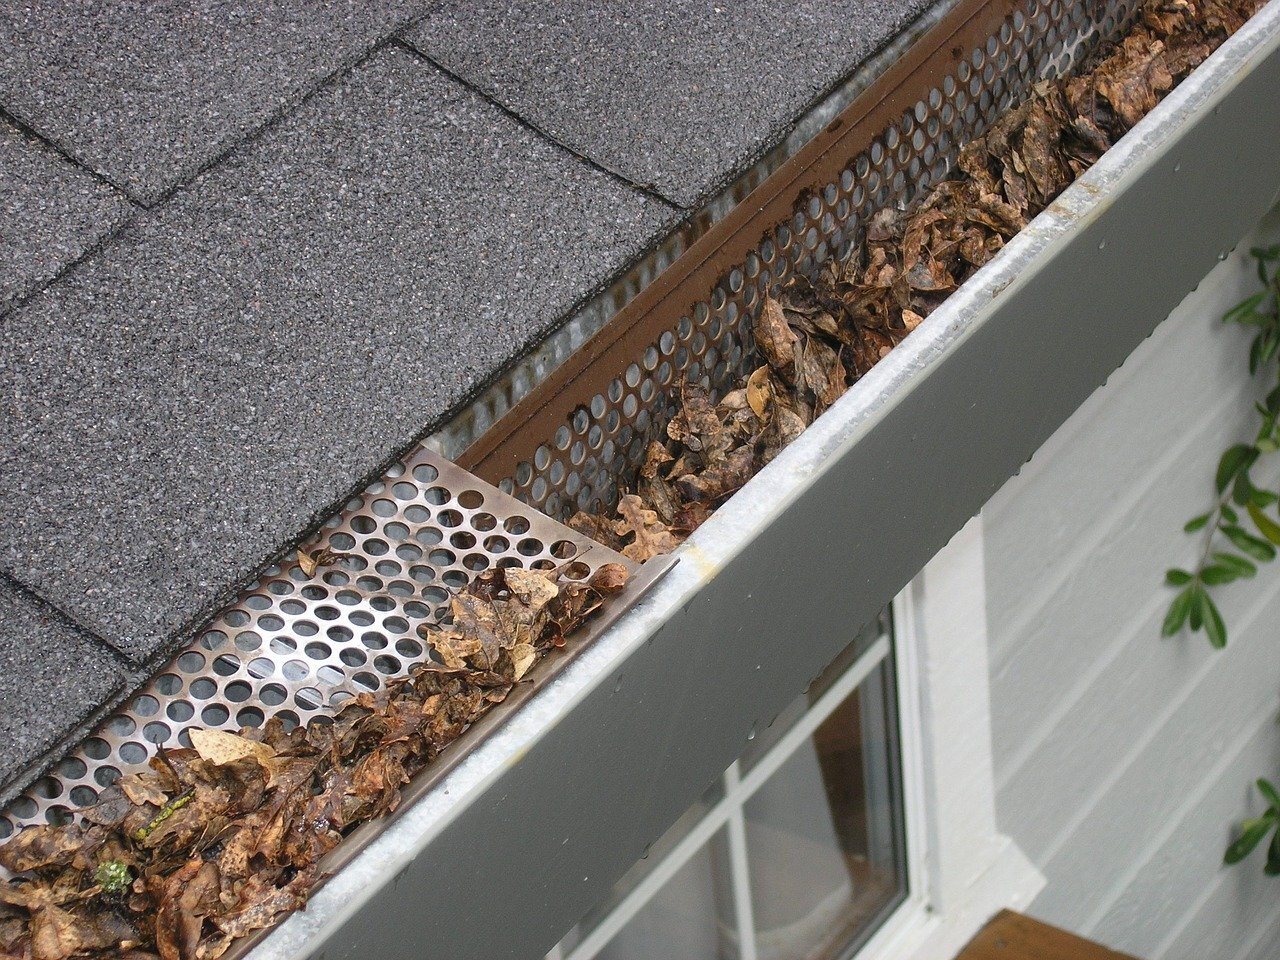 eavestrough debris - summer home maintenance